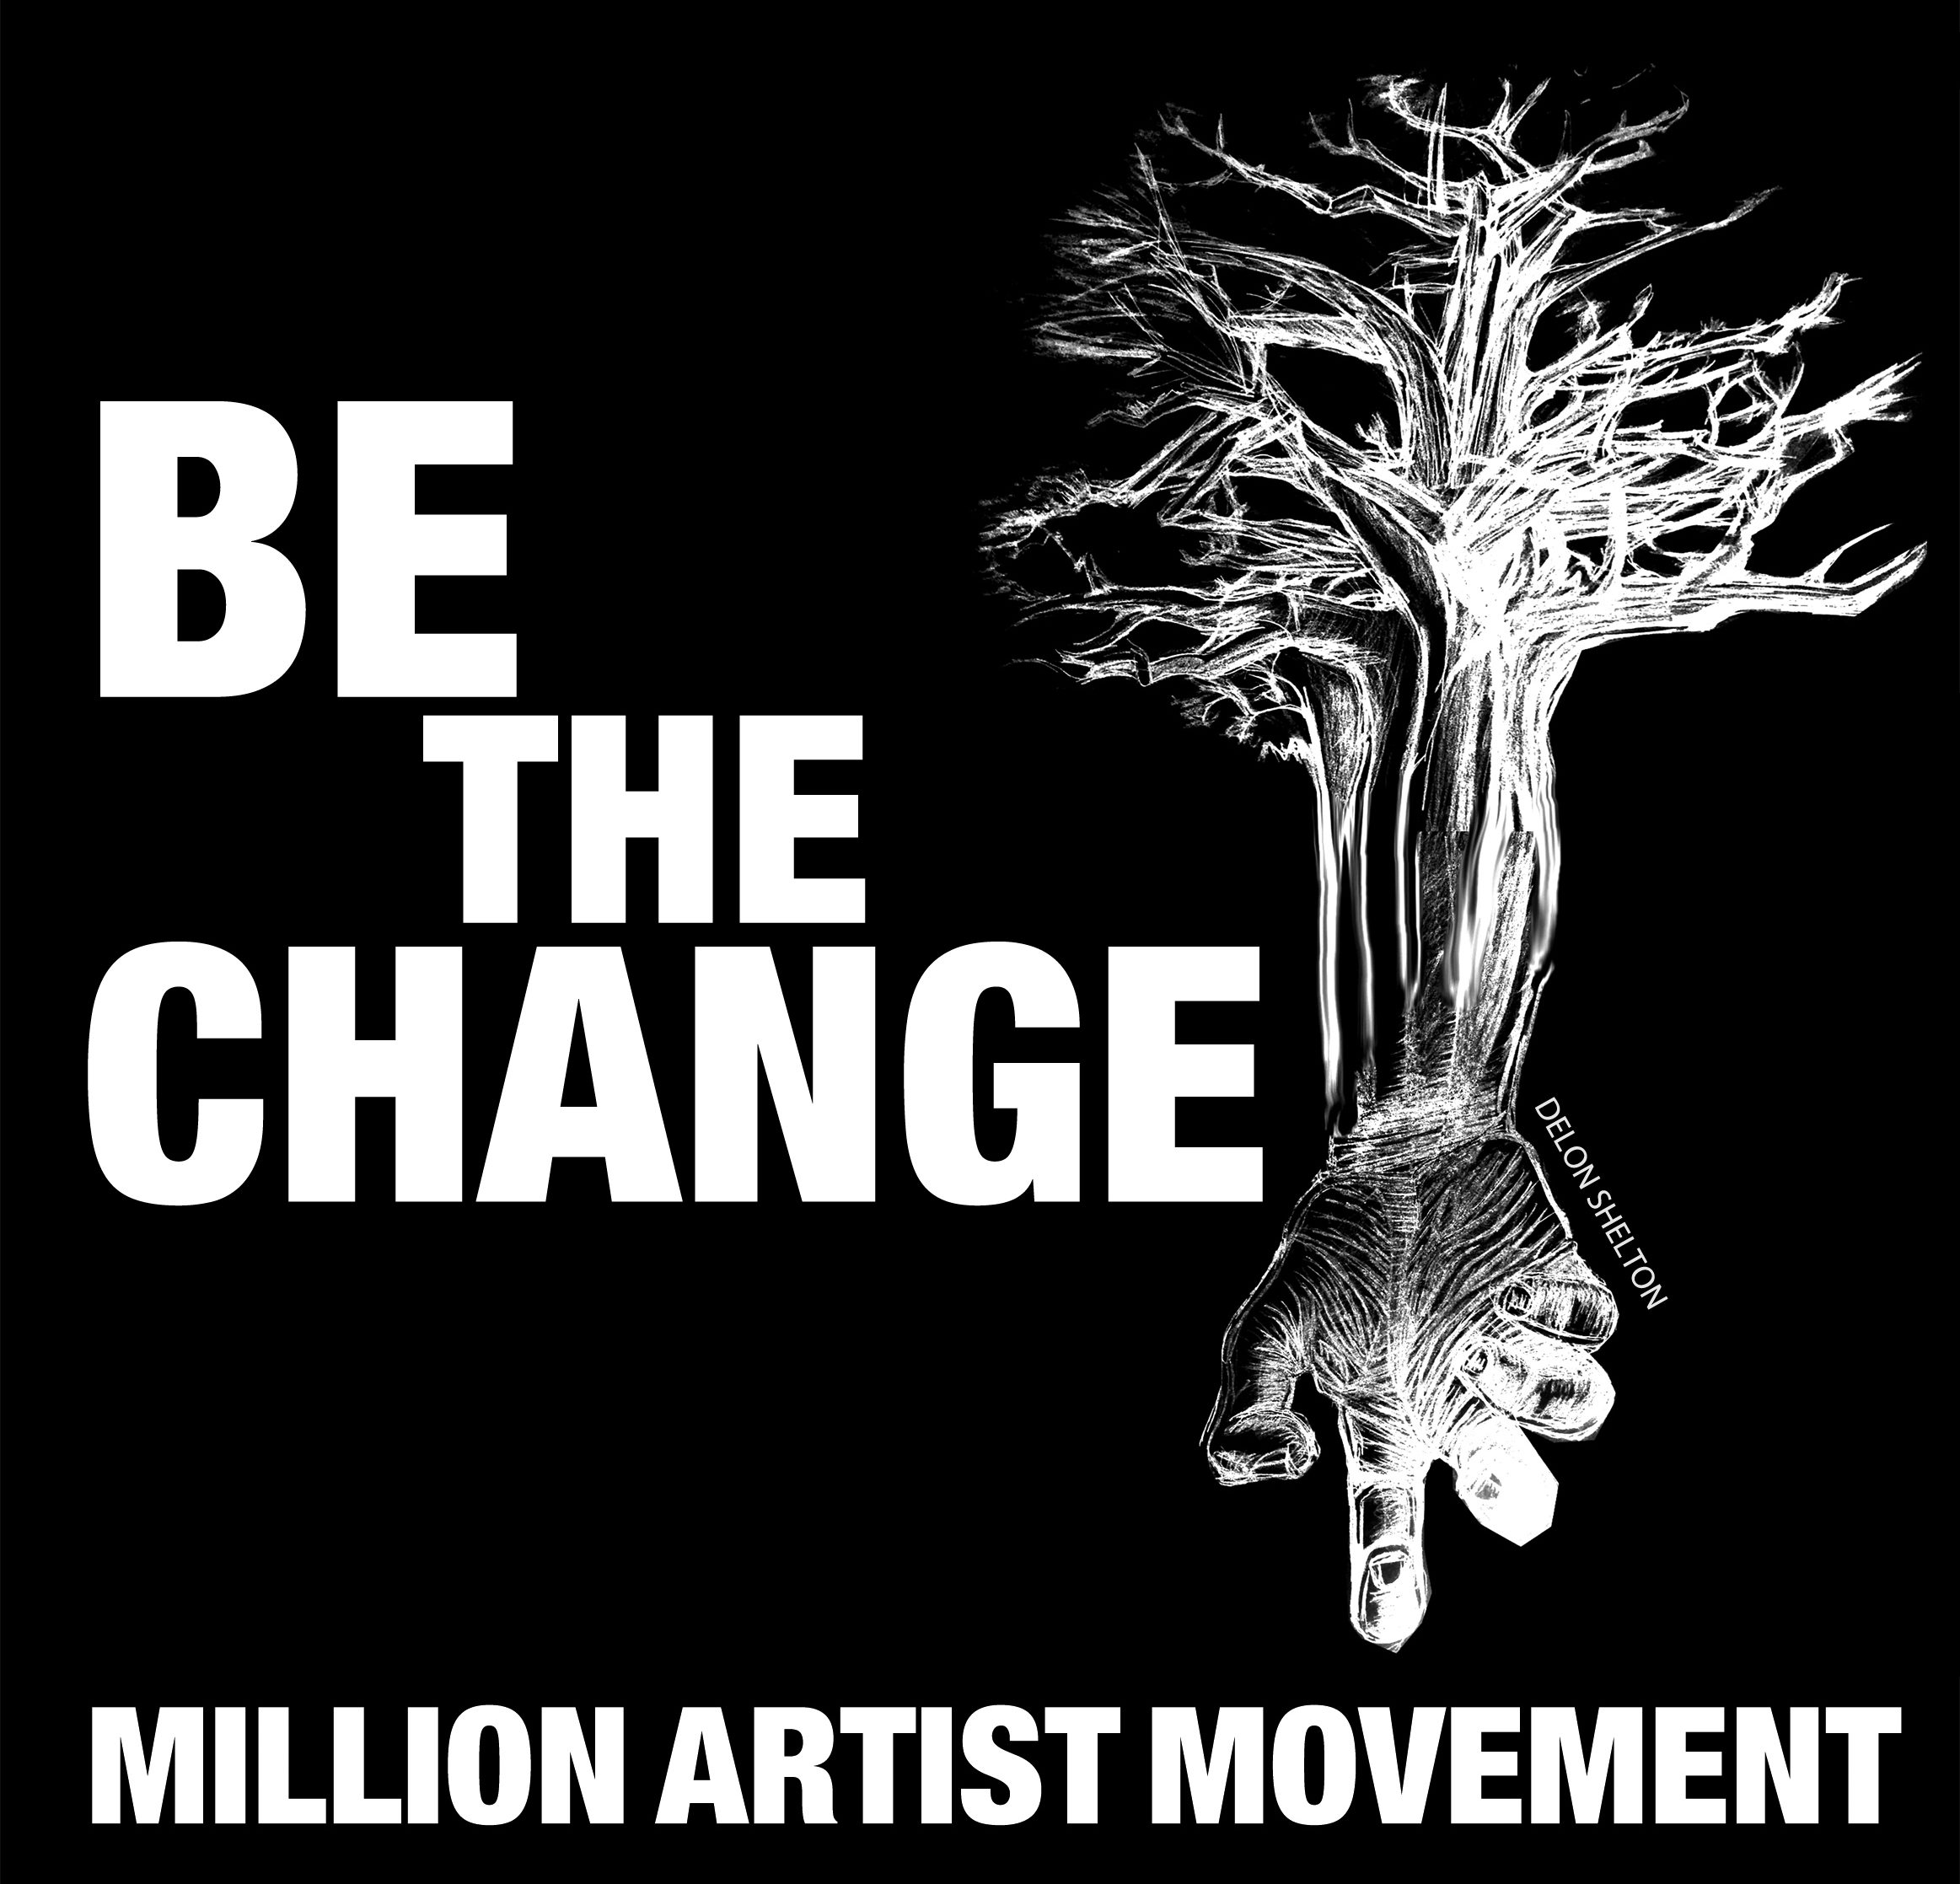 Million Artist Movement